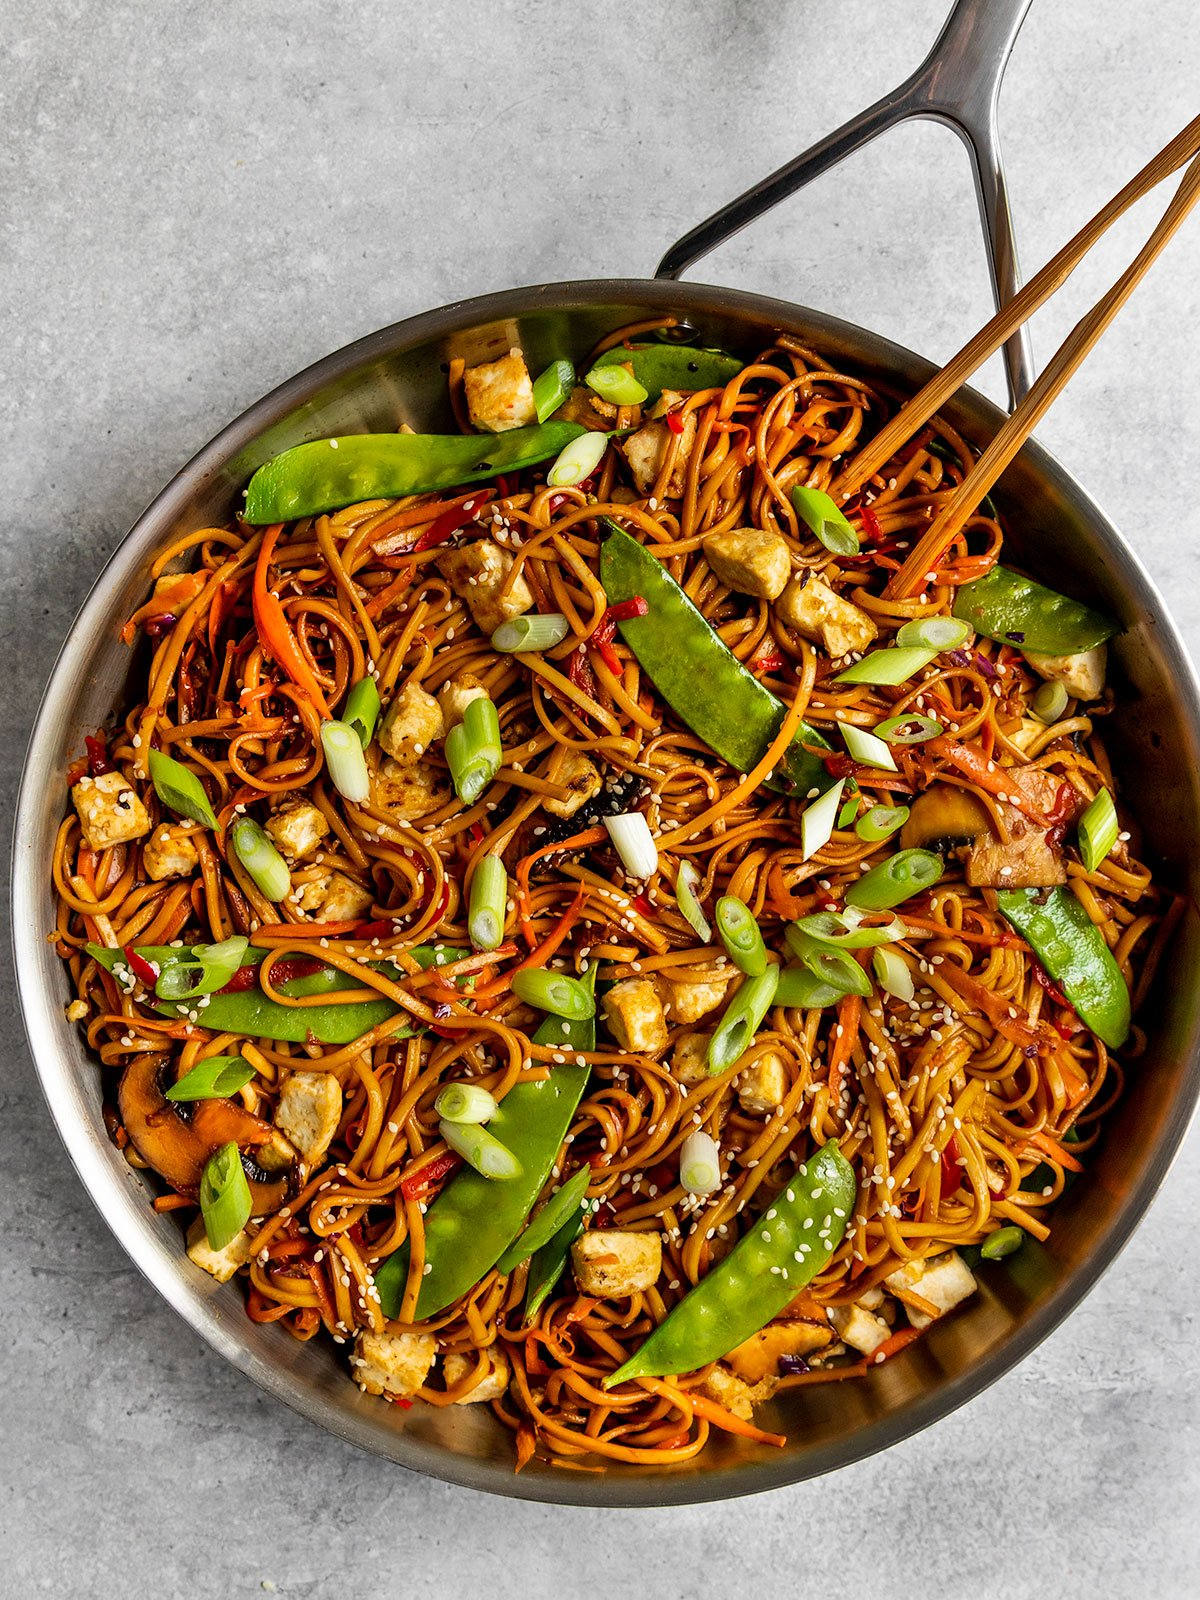 a pan of lo mein noodles with tofu, snap peas, carrots, peppers, cabbage, and green onions